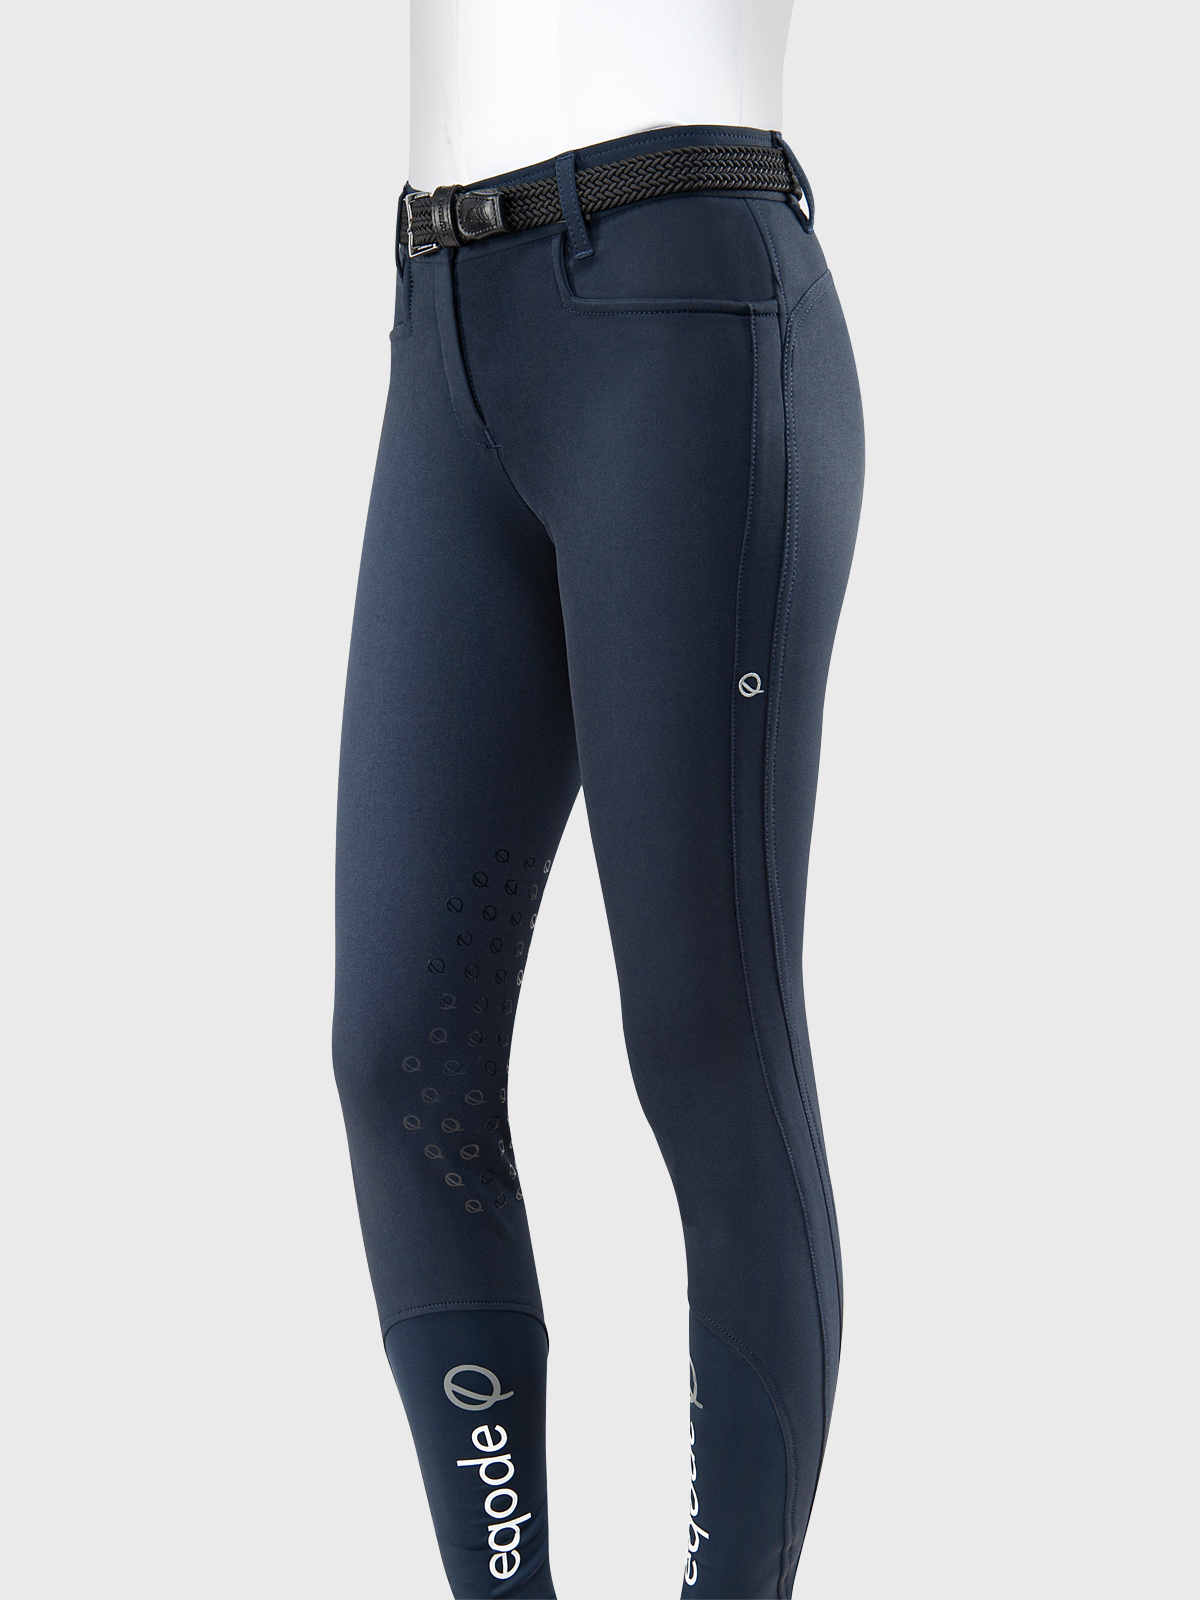 EQODE WOMEN'S BREECHES WITH KNEE GRIP 1